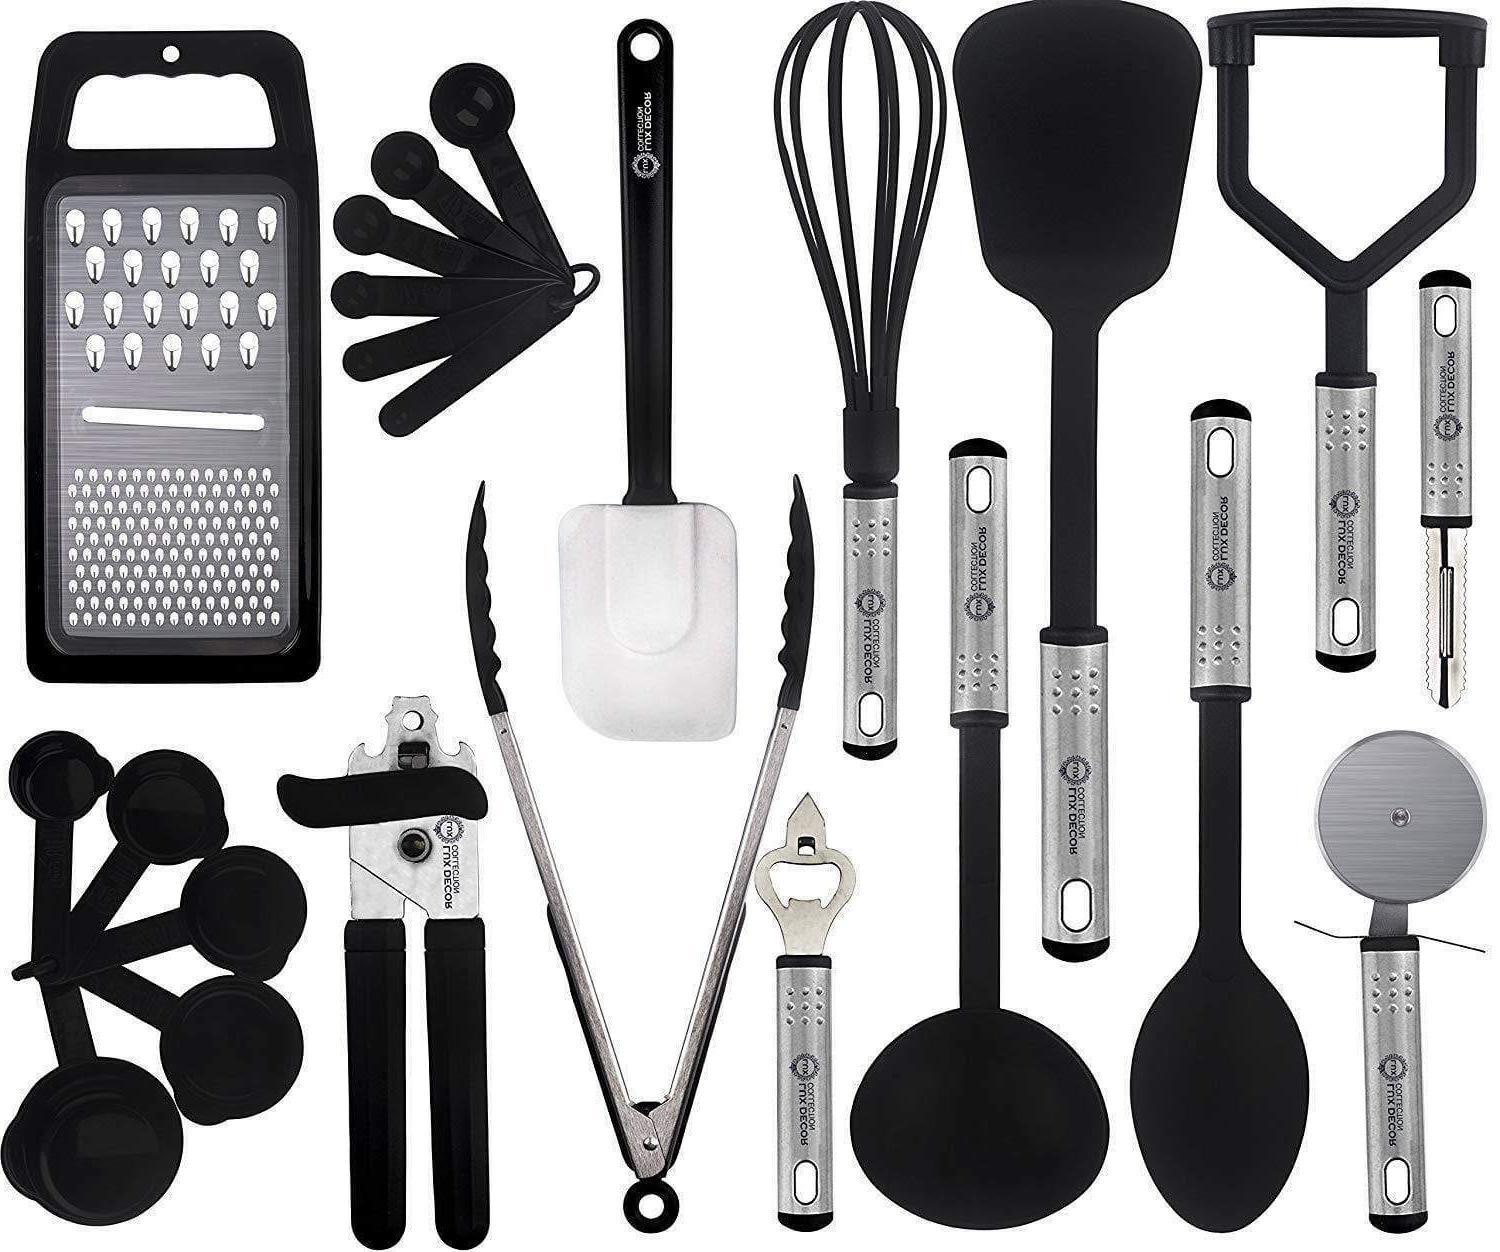 Cooking 23 Piece Stainless Steel Nylon Cookware Utensils